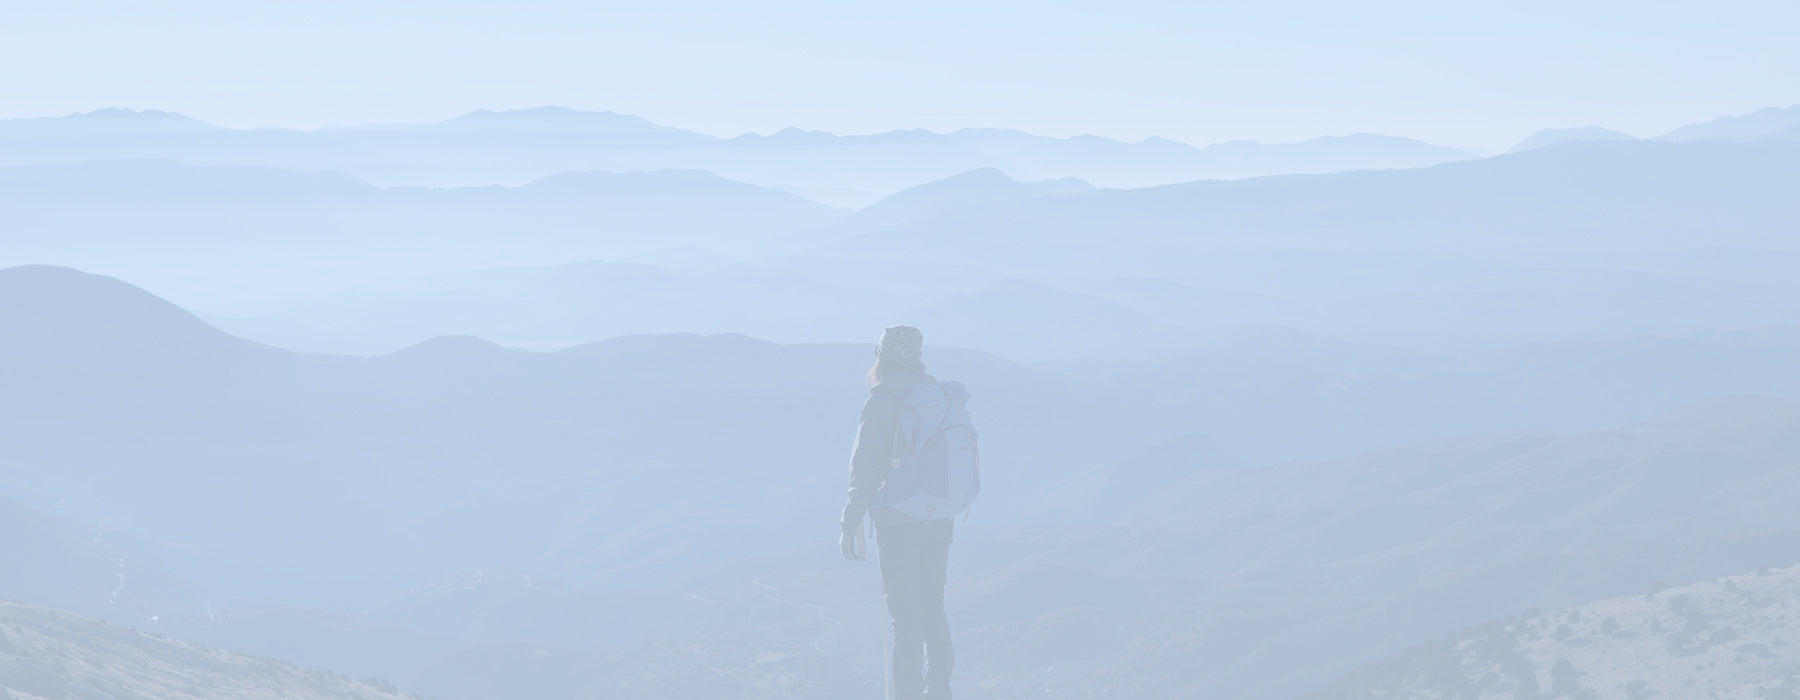 a woman standing looking at mountains blog cover for personal growth and spirituality